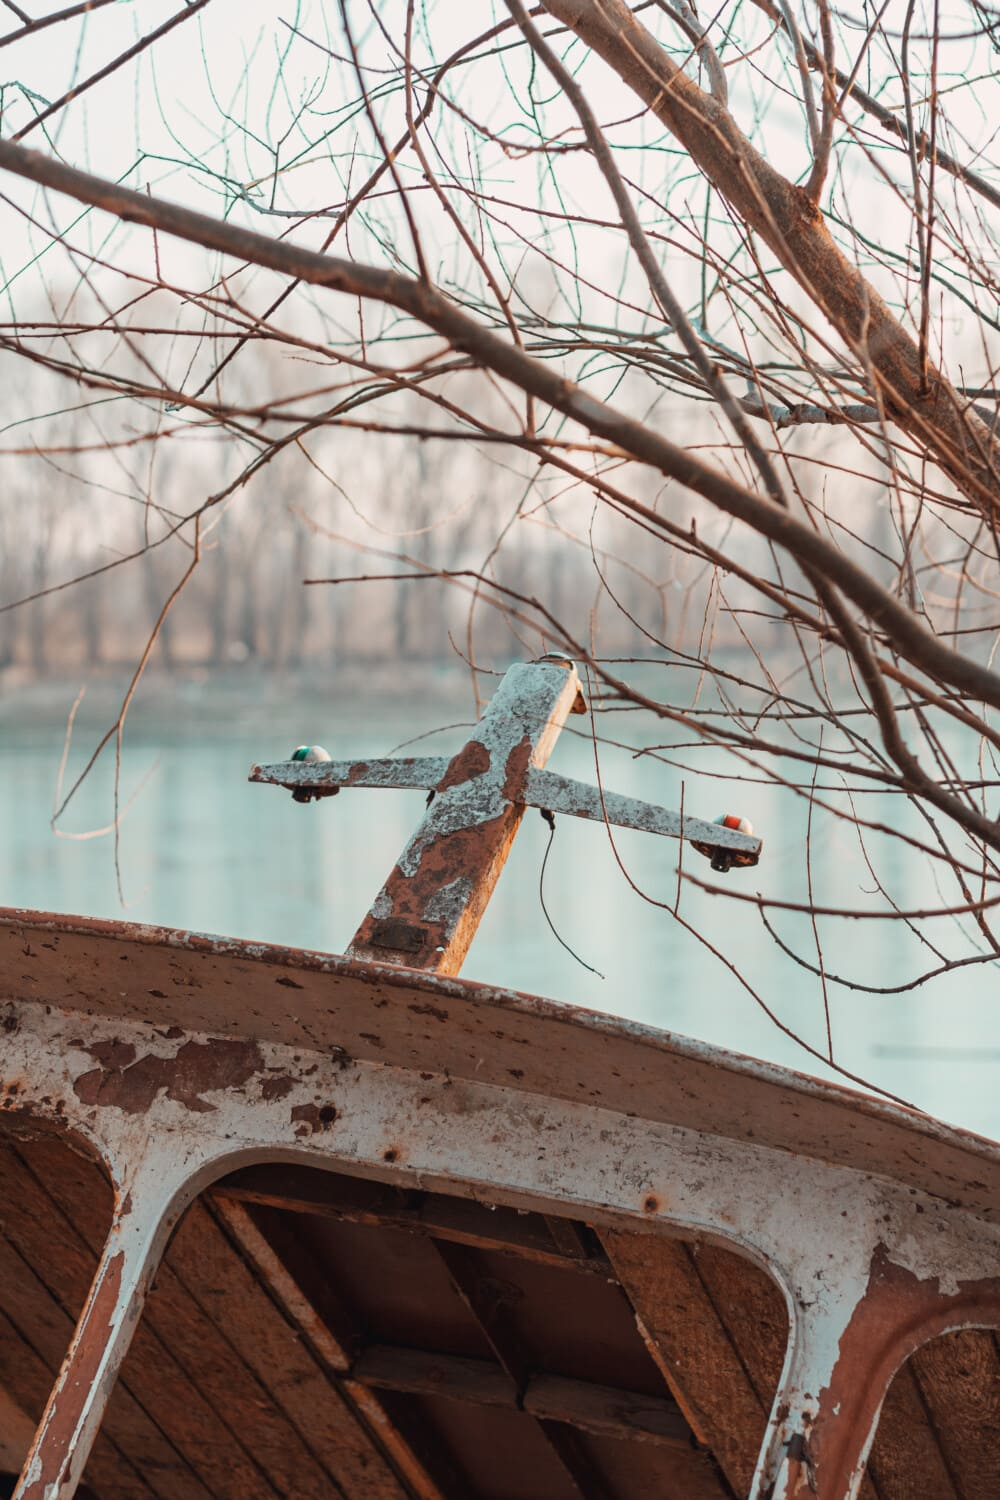 boat, wreck, tree, winter, wood, old, steel, nature, abandoned, outdoors